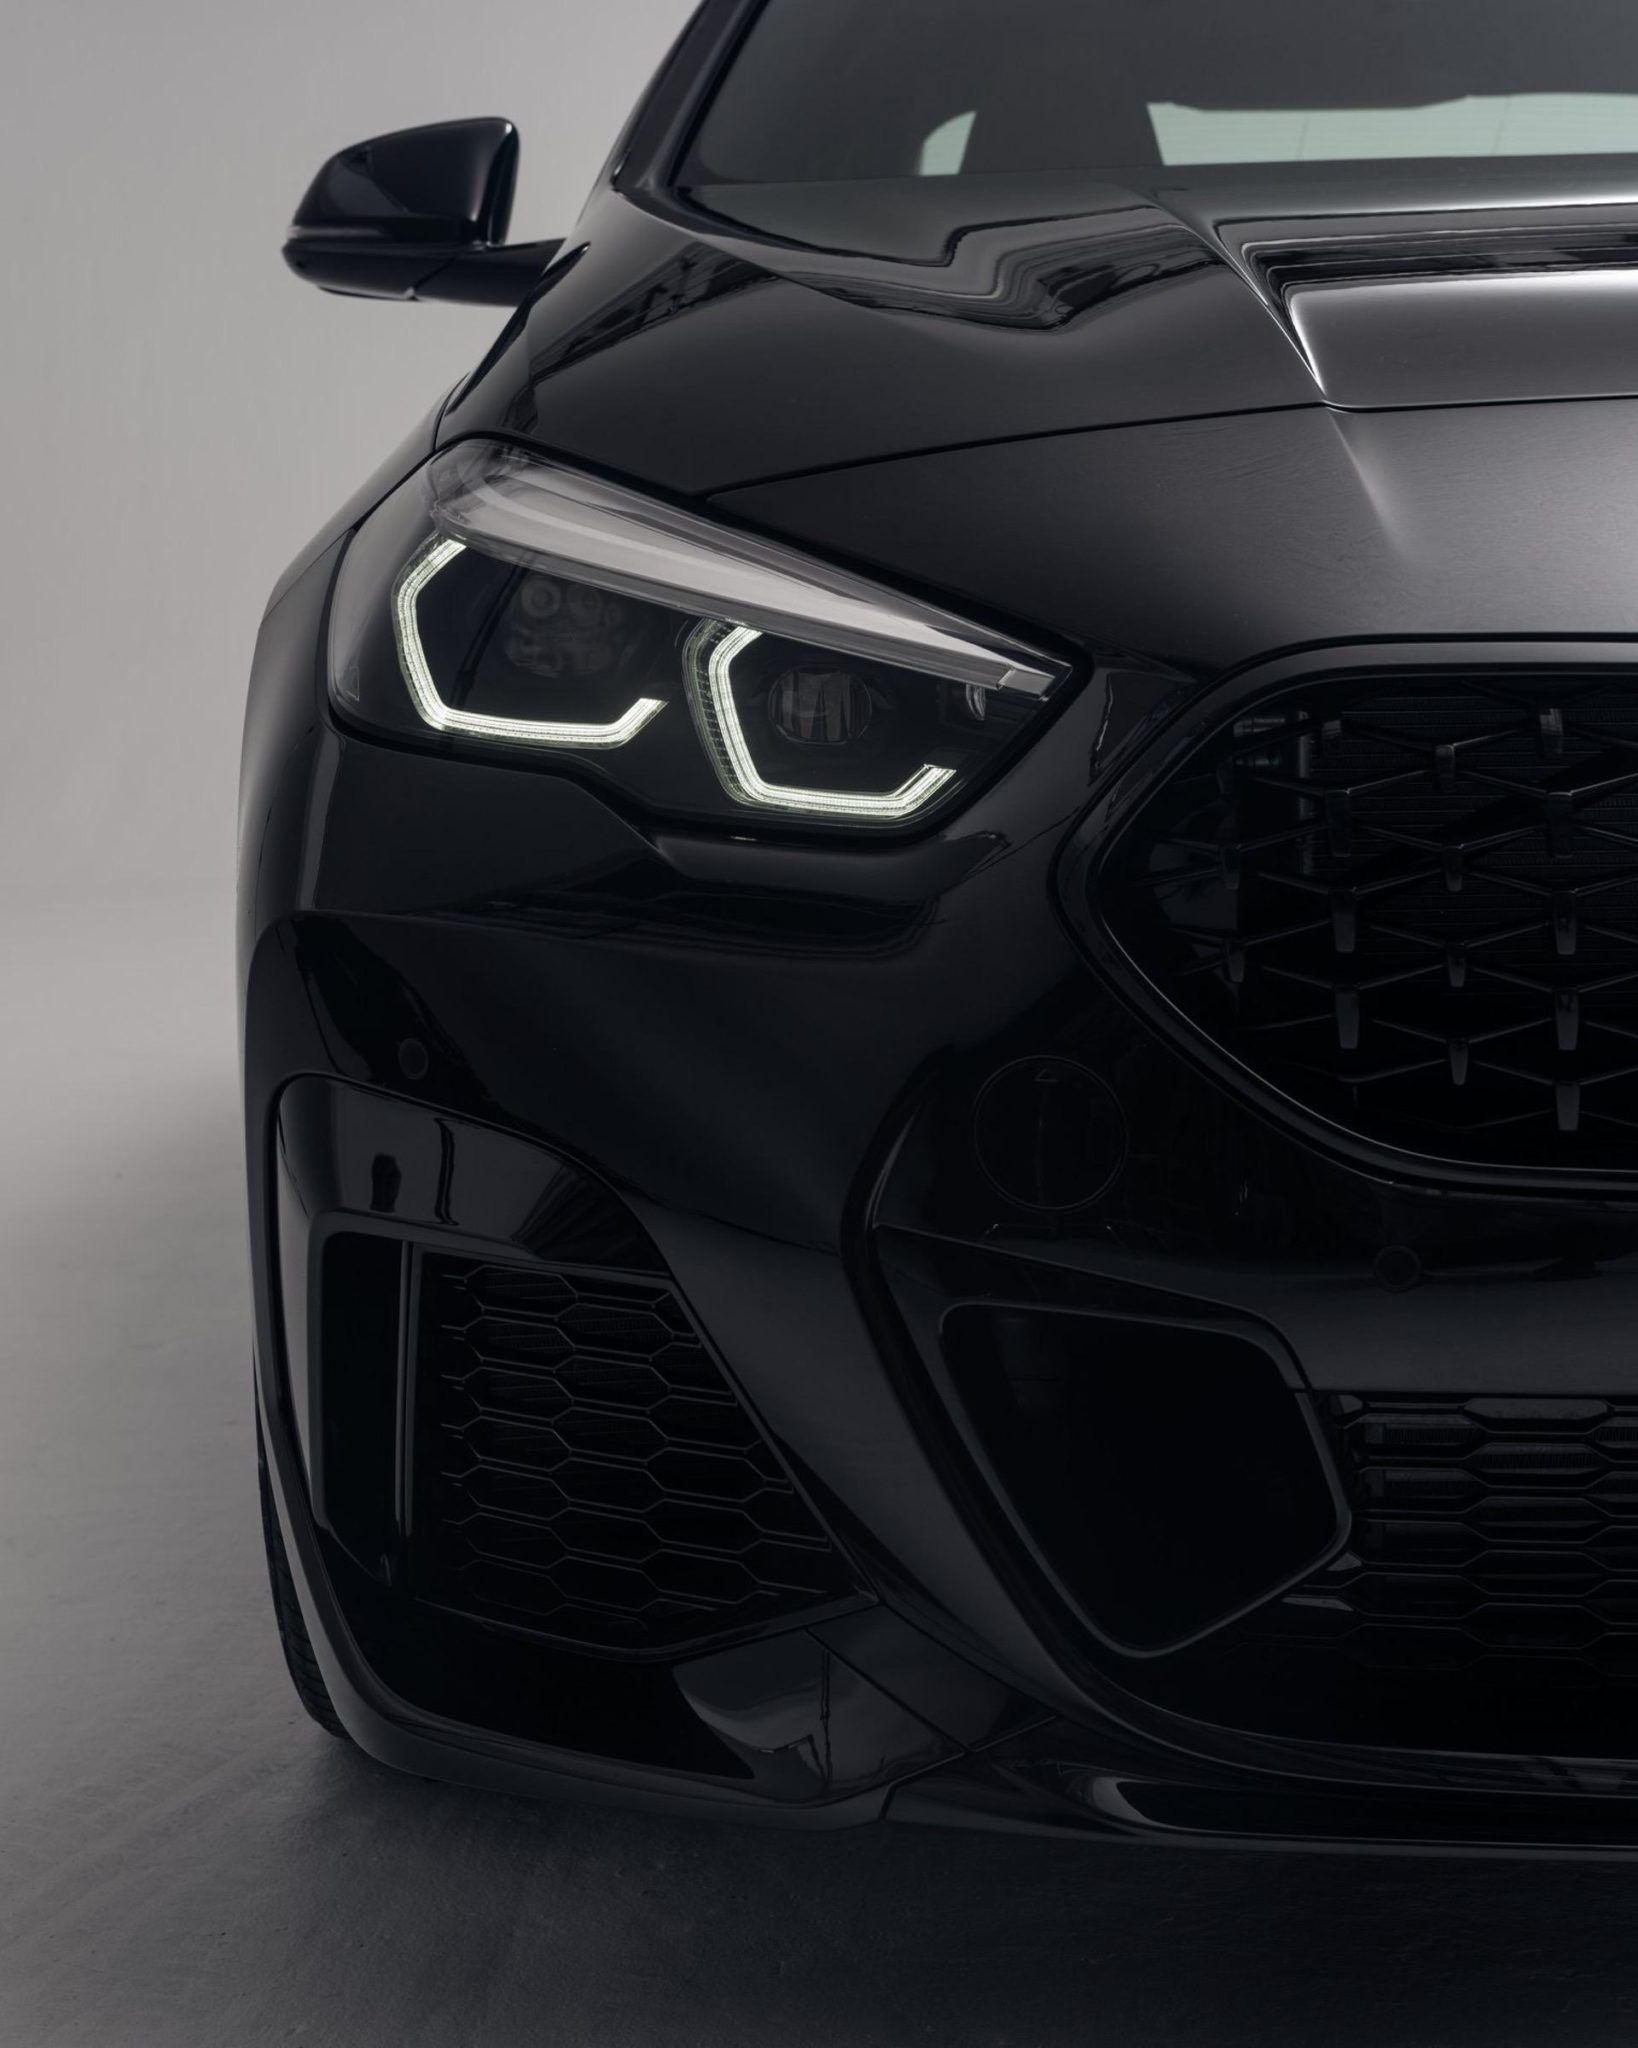 Bmw 2 Series Gran Coupe In Sapphire Black Looks Pretty Good Bmw 2 Bmw Coupe